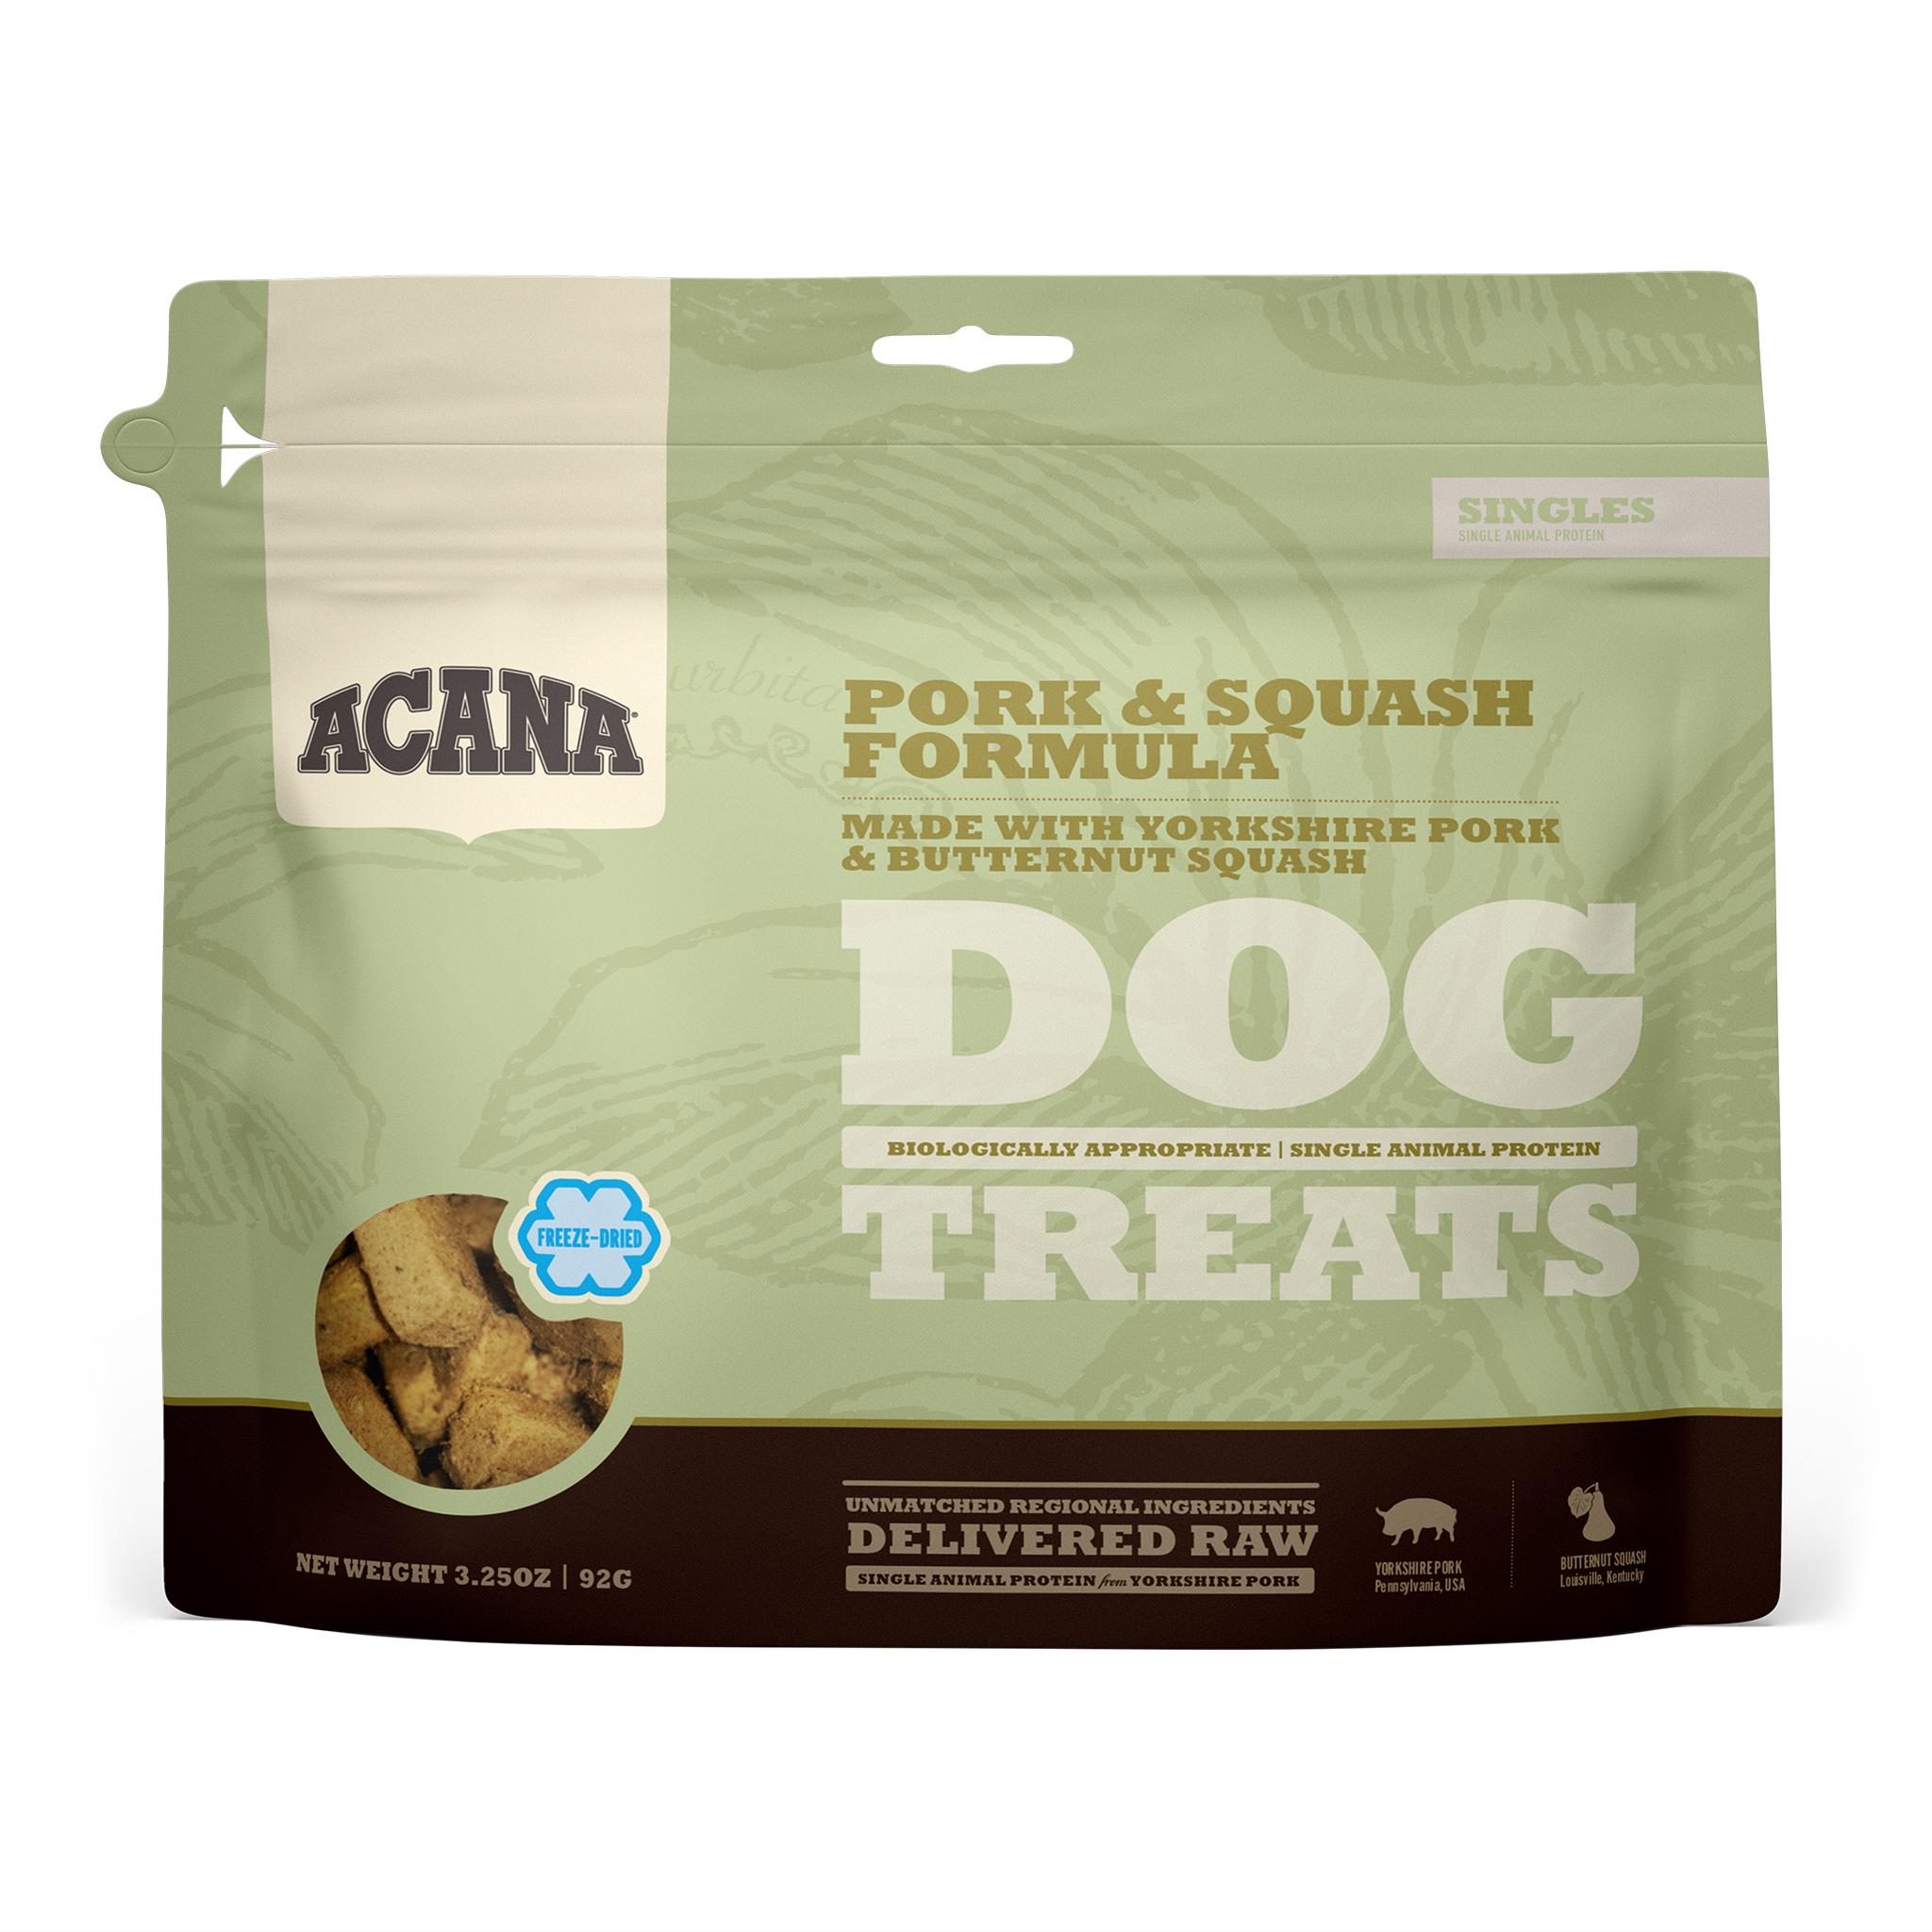 ACANA Singles Pork & Squash Grain-Free Freeze-Dried Dog Treats, 3.25-oz